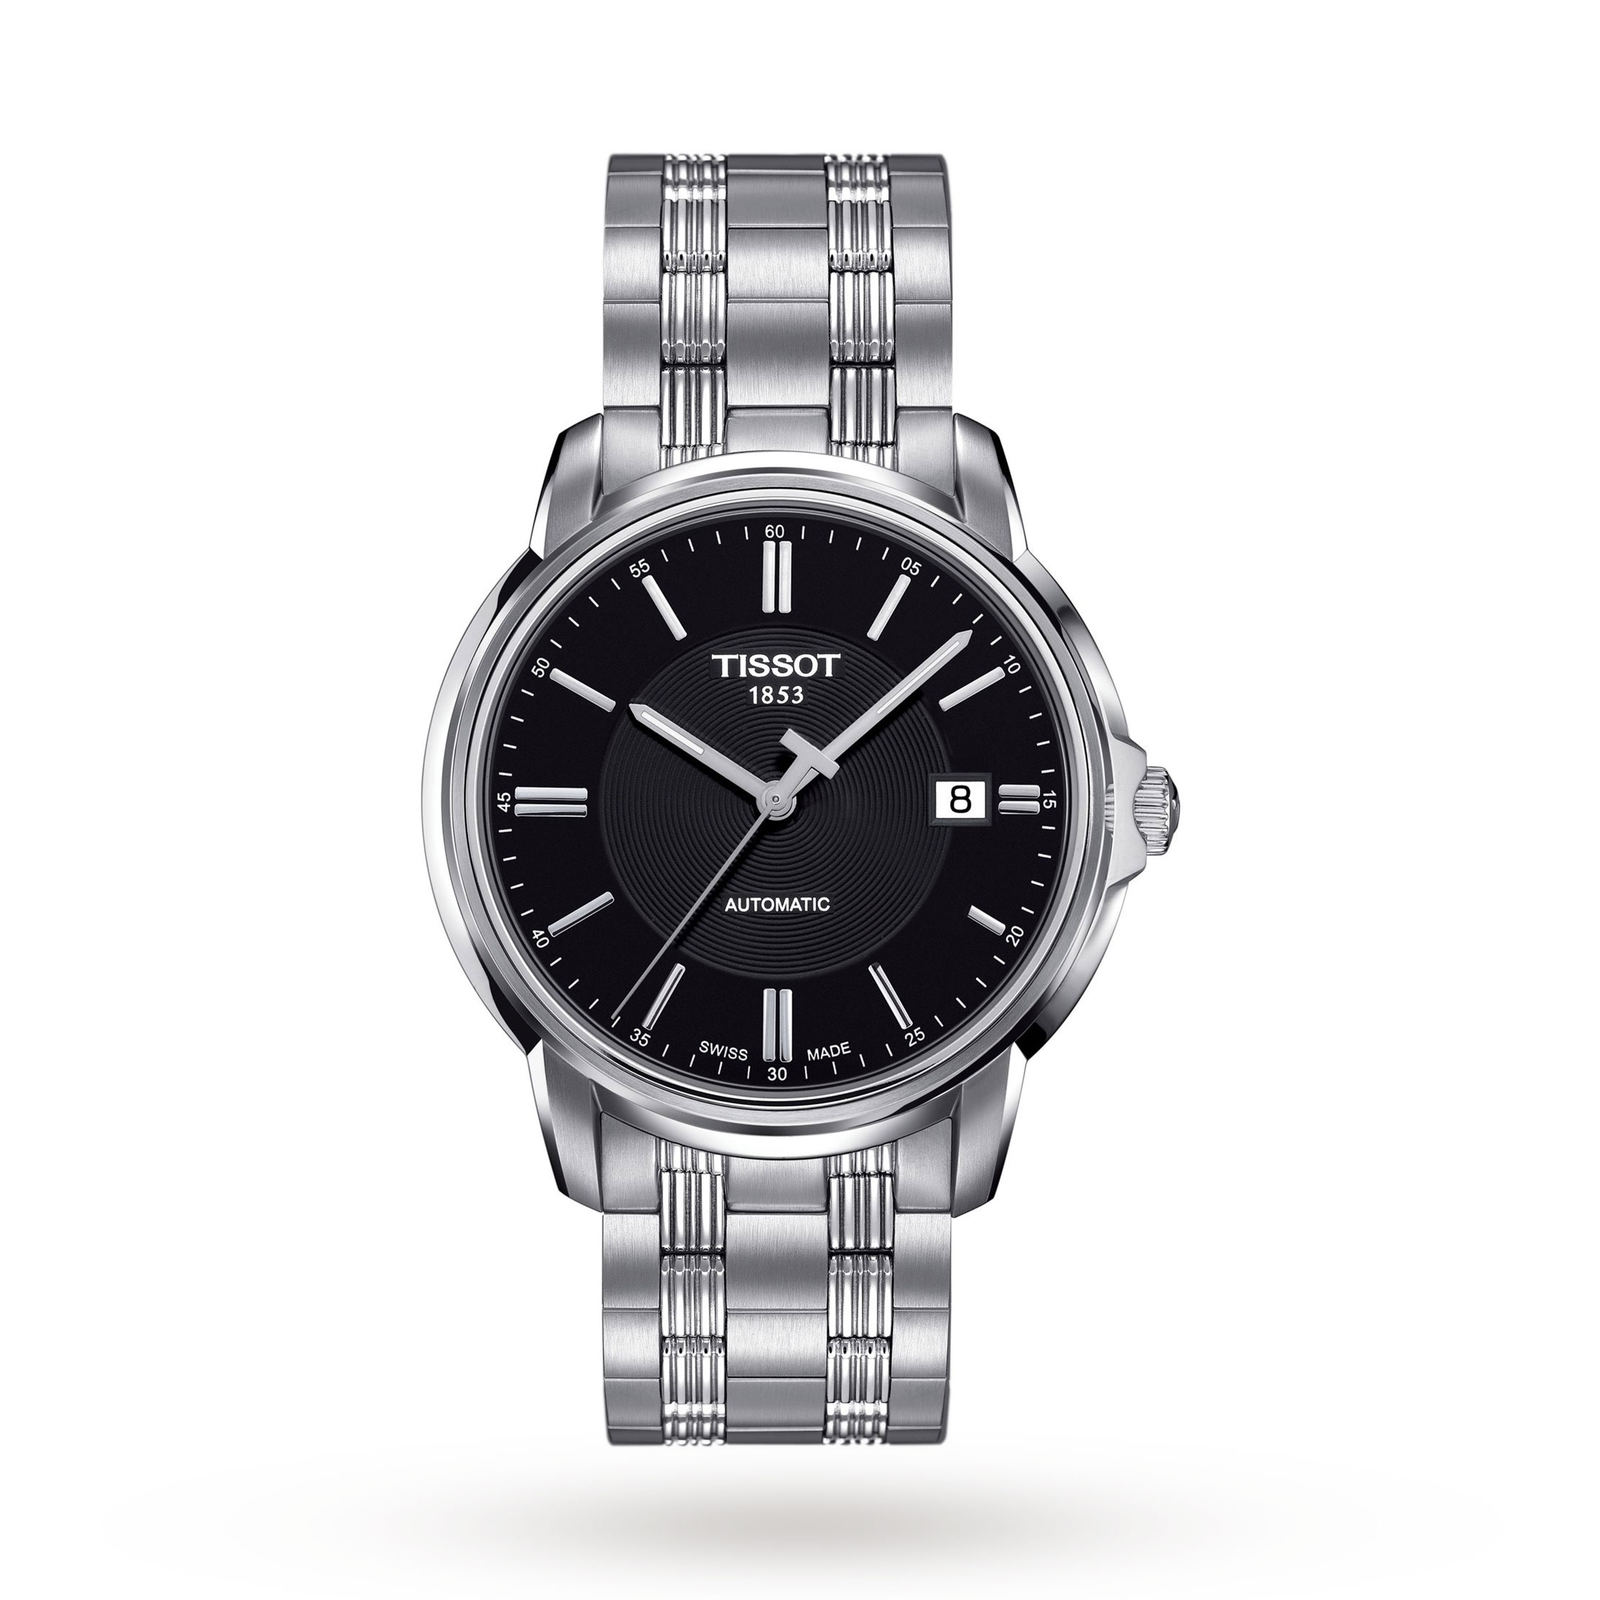 Tissot Automatic III Date Watch